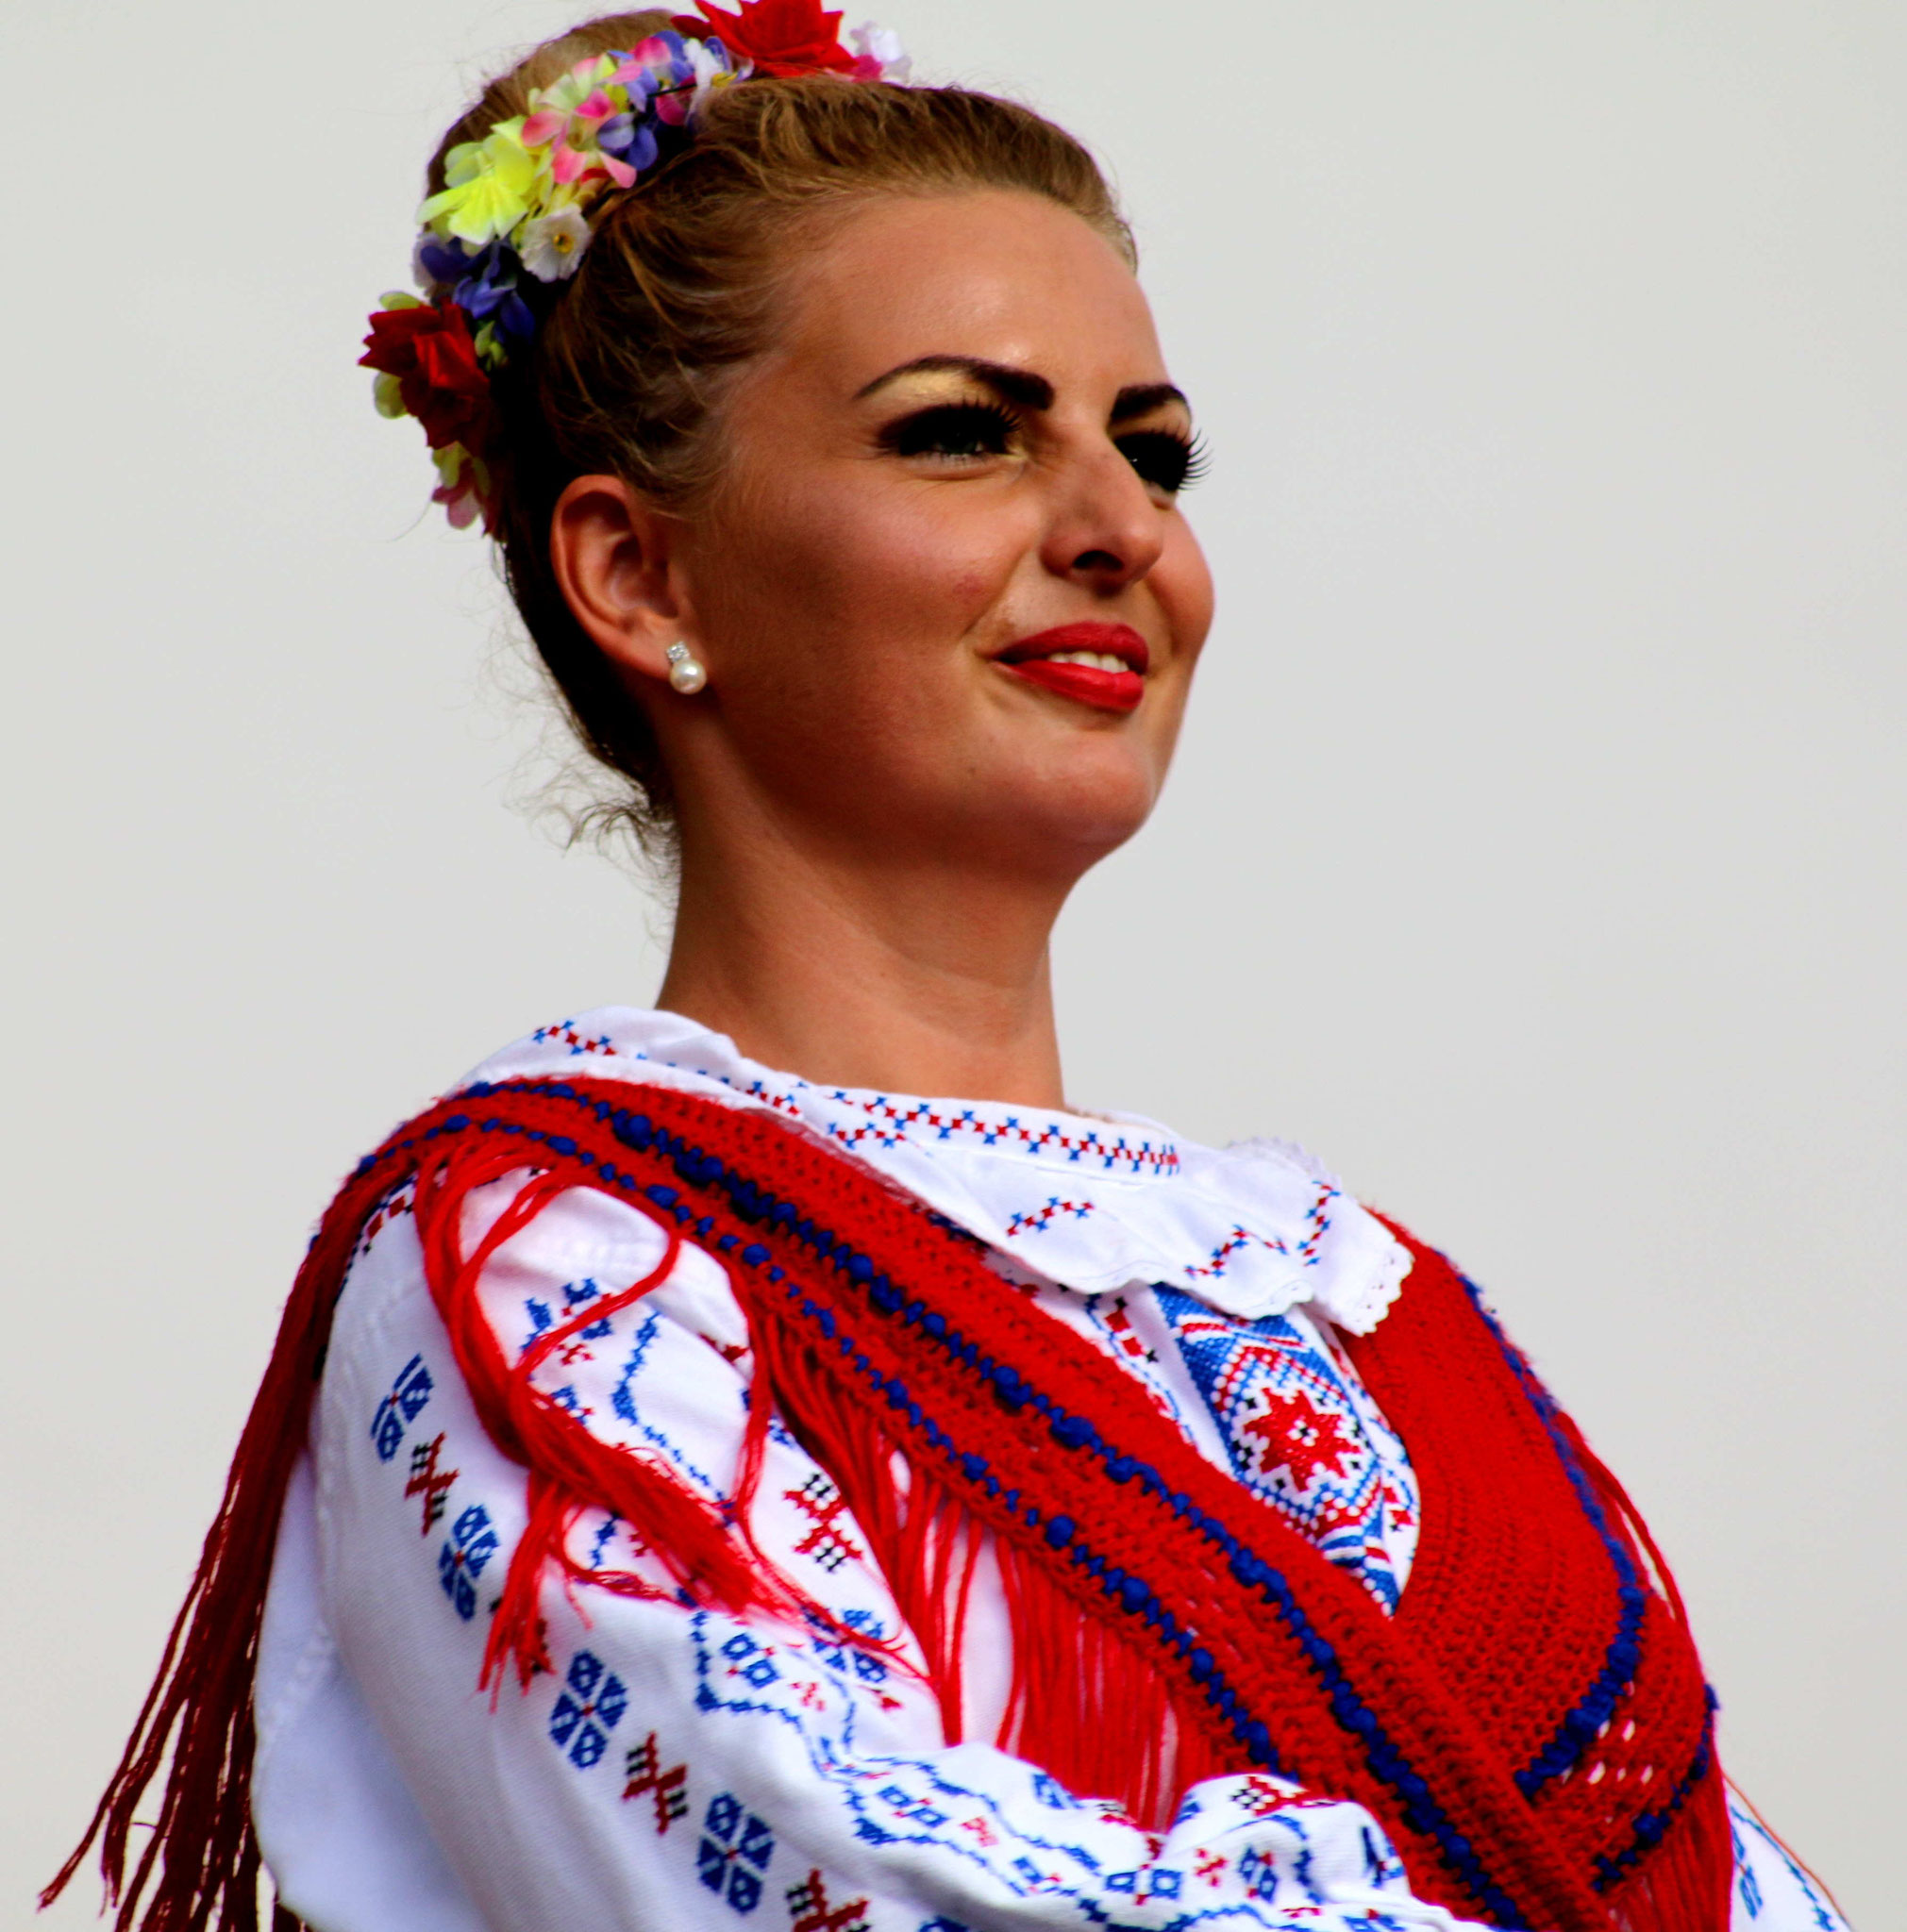 Monica Marton (Romania) - Proud to be from Bihor